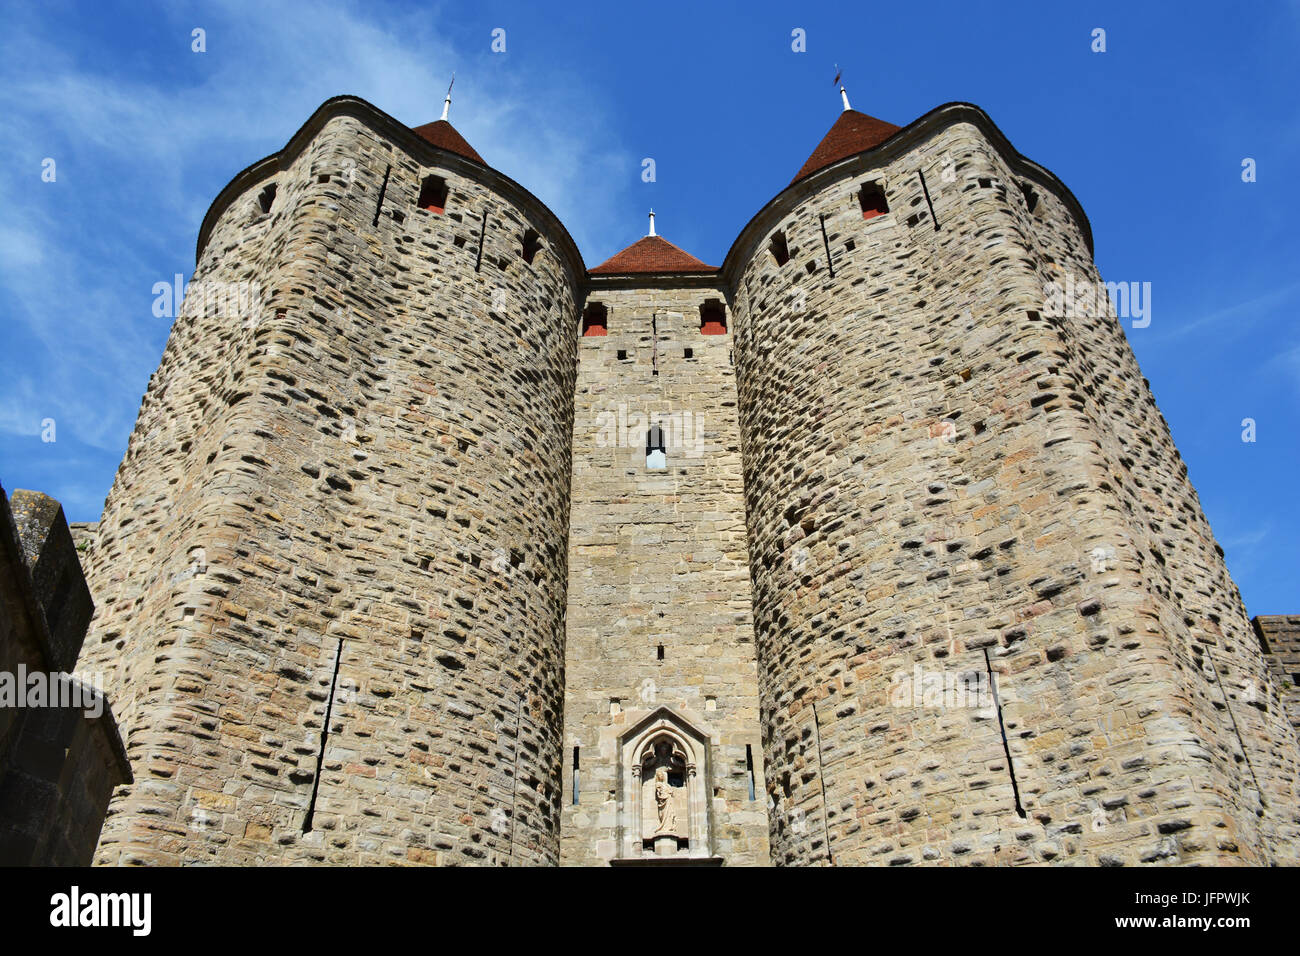 The medieval city of Carcassonne, Aude, Occitanie, France - Stock Image